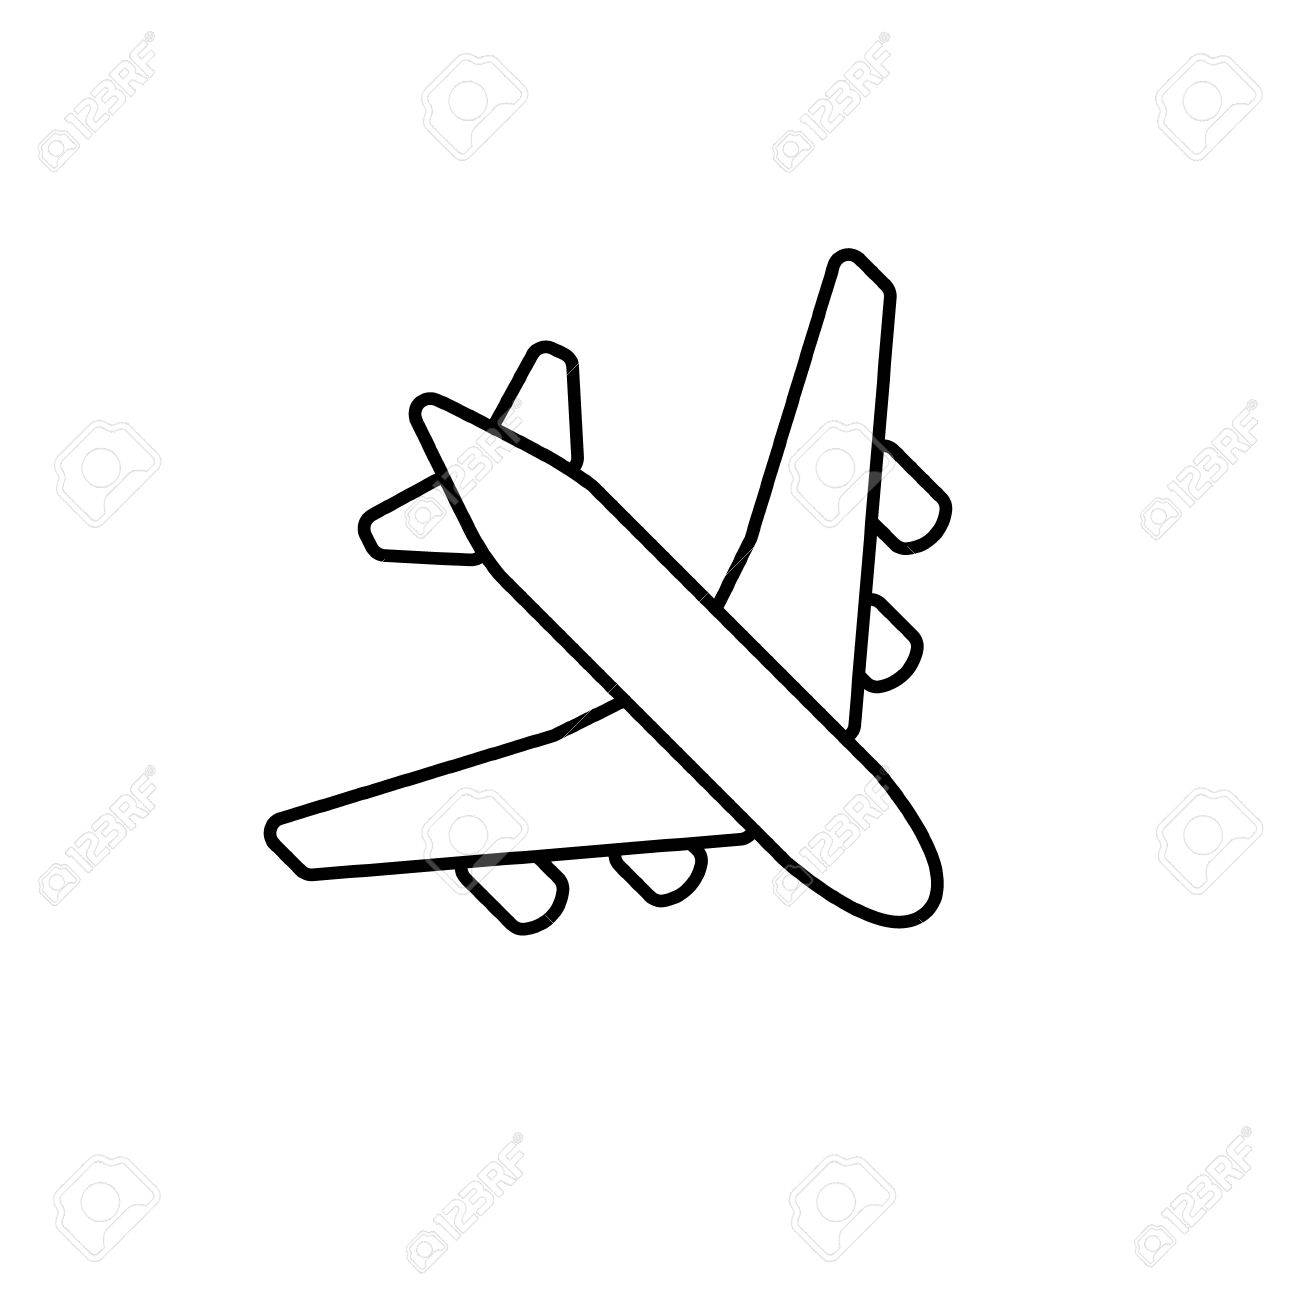 Simple Plane Drawing at PaintingValley.com.